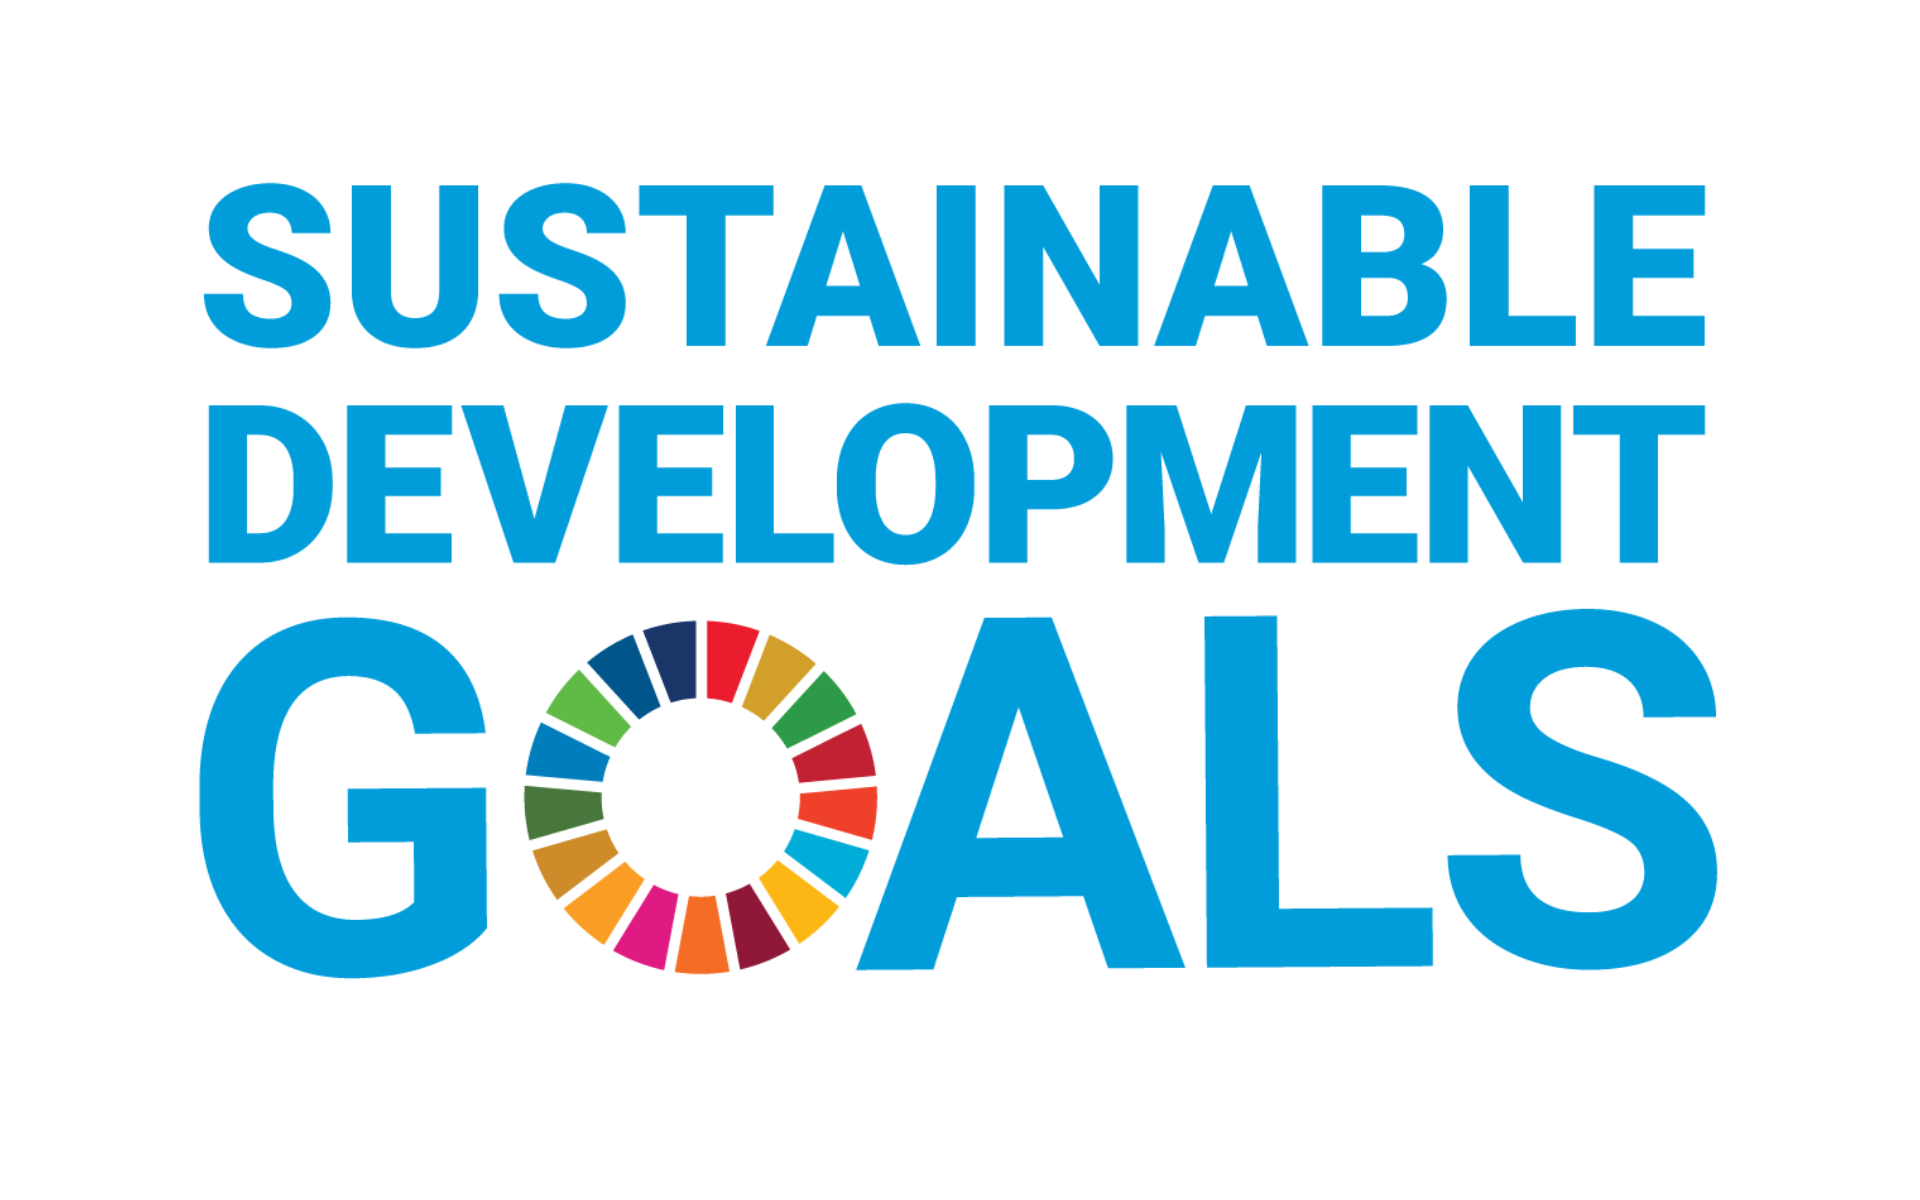 11 Resources to Ignite Action on the Sustainable Development Goals